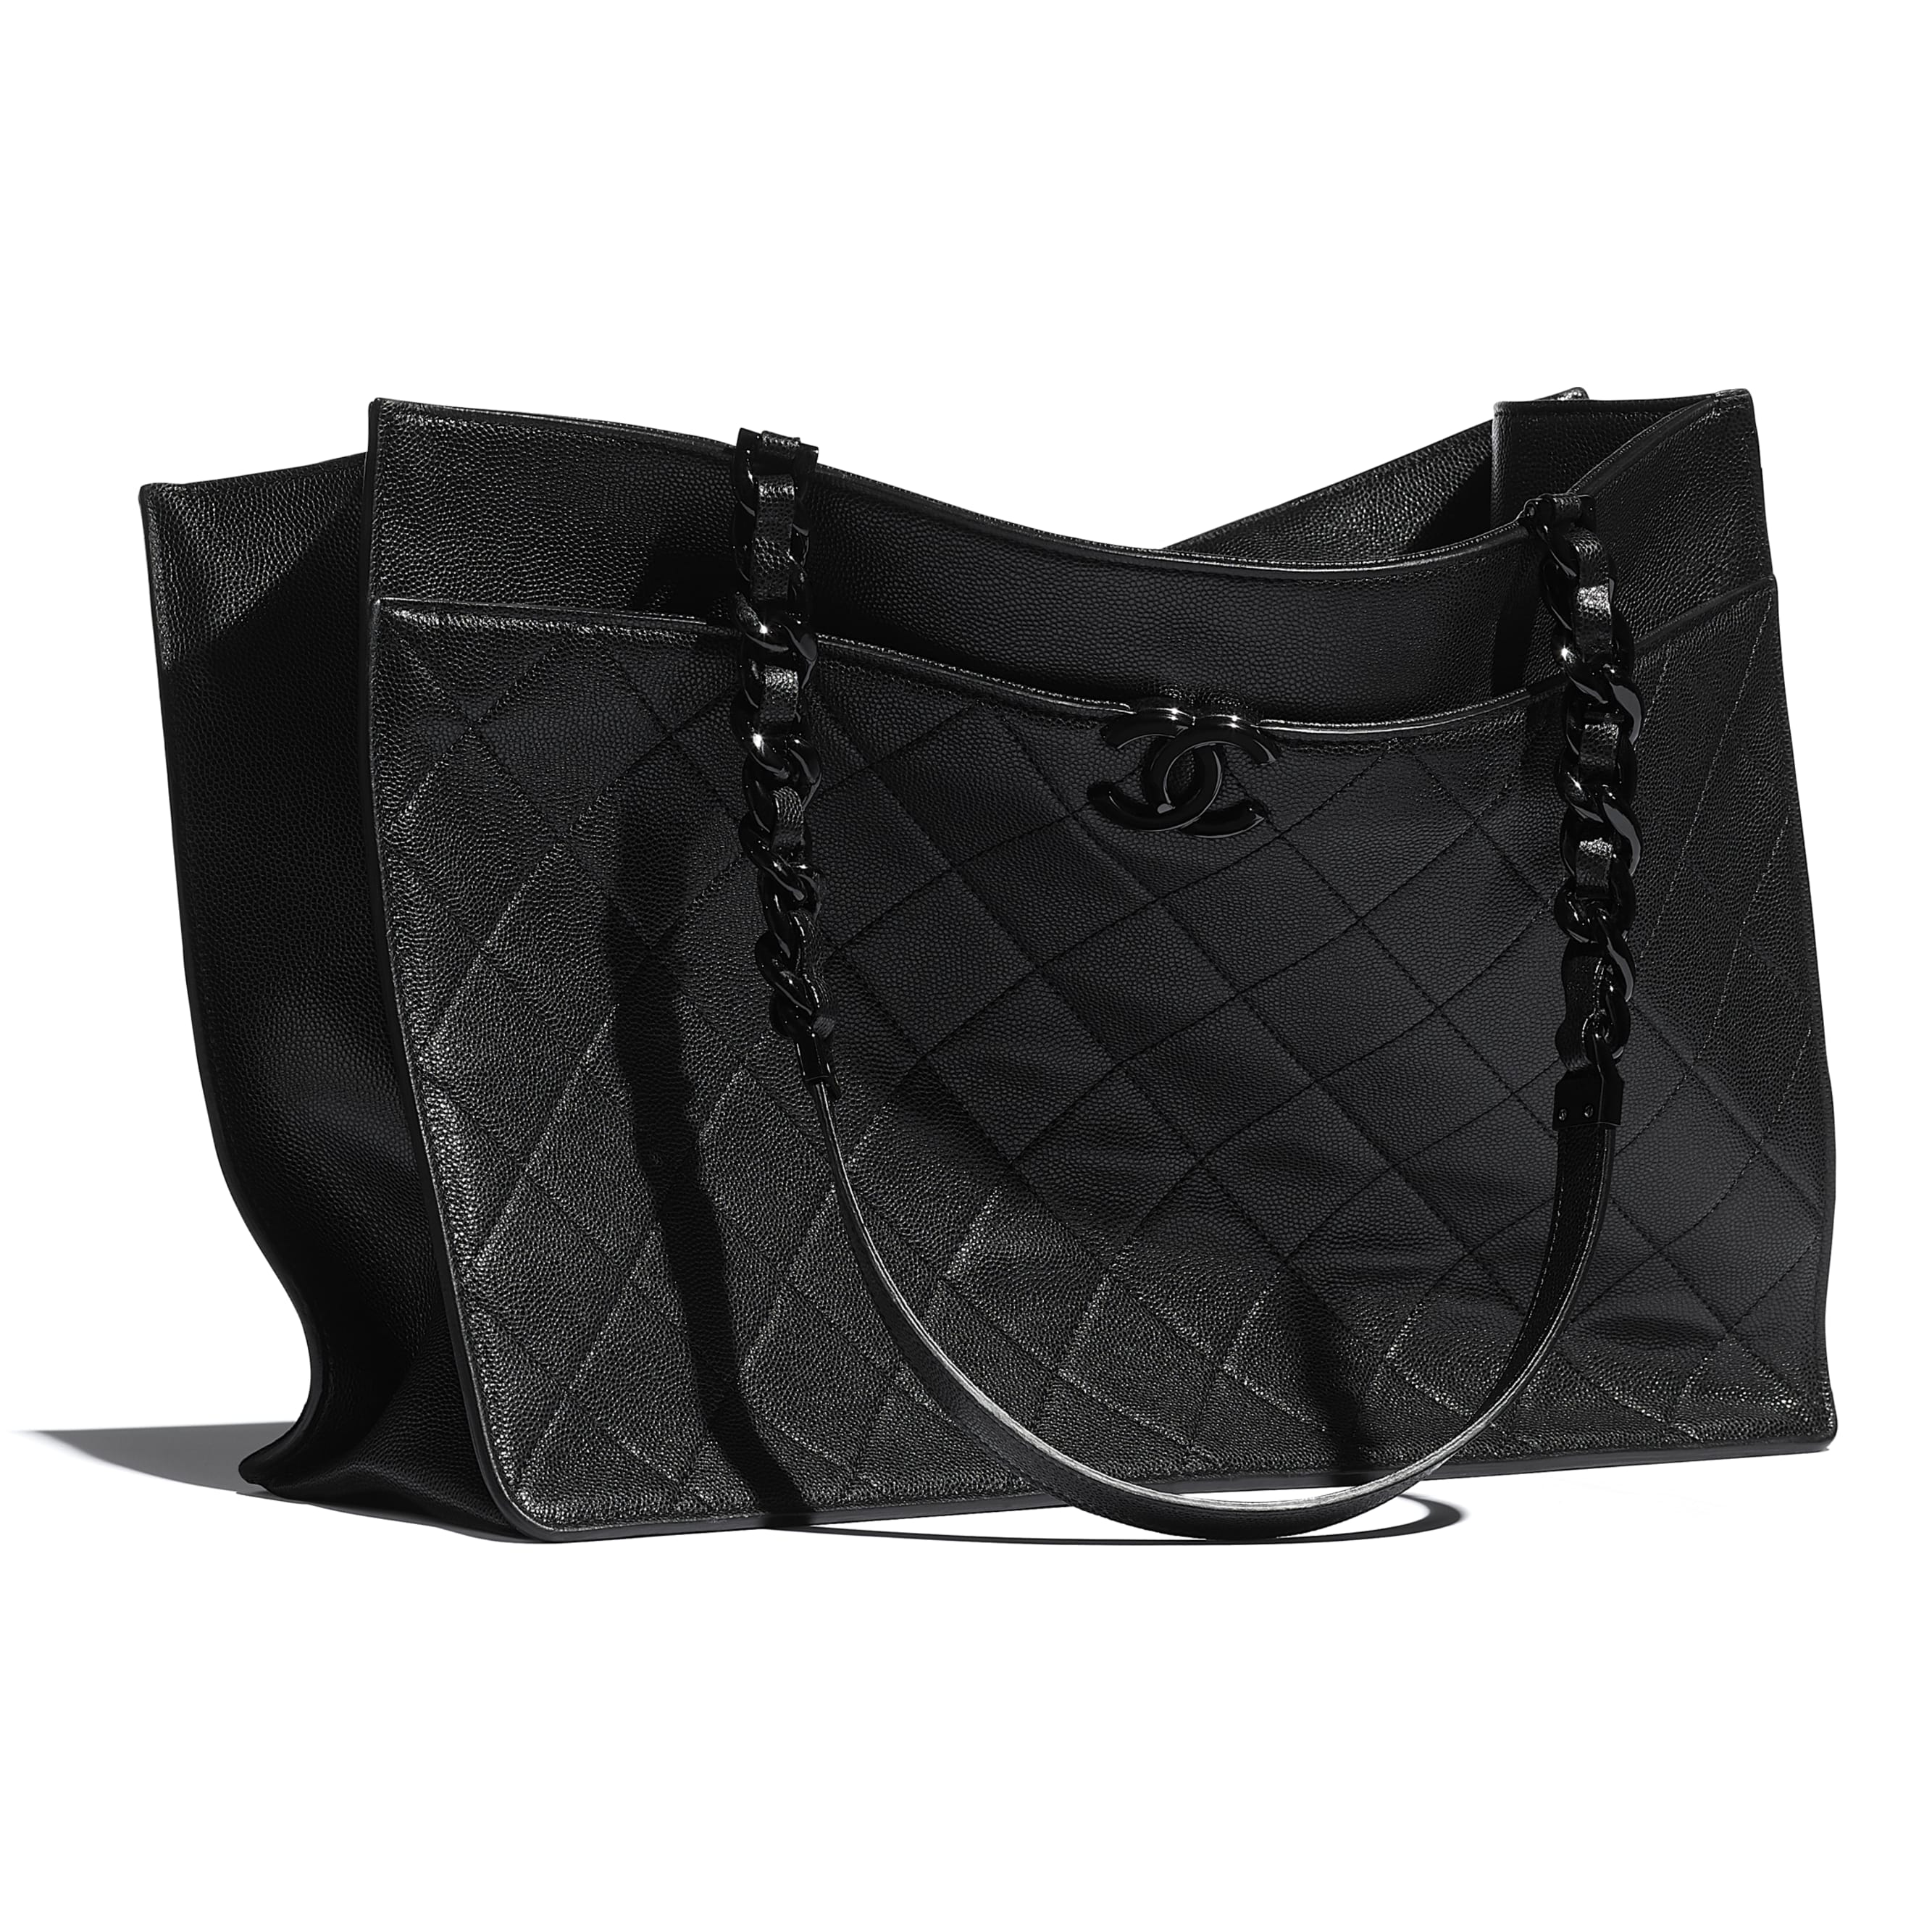 Large Tote - Black - Grained Calfskin & Lacquered Metal - CHANEL - Extra view - see standard sized version